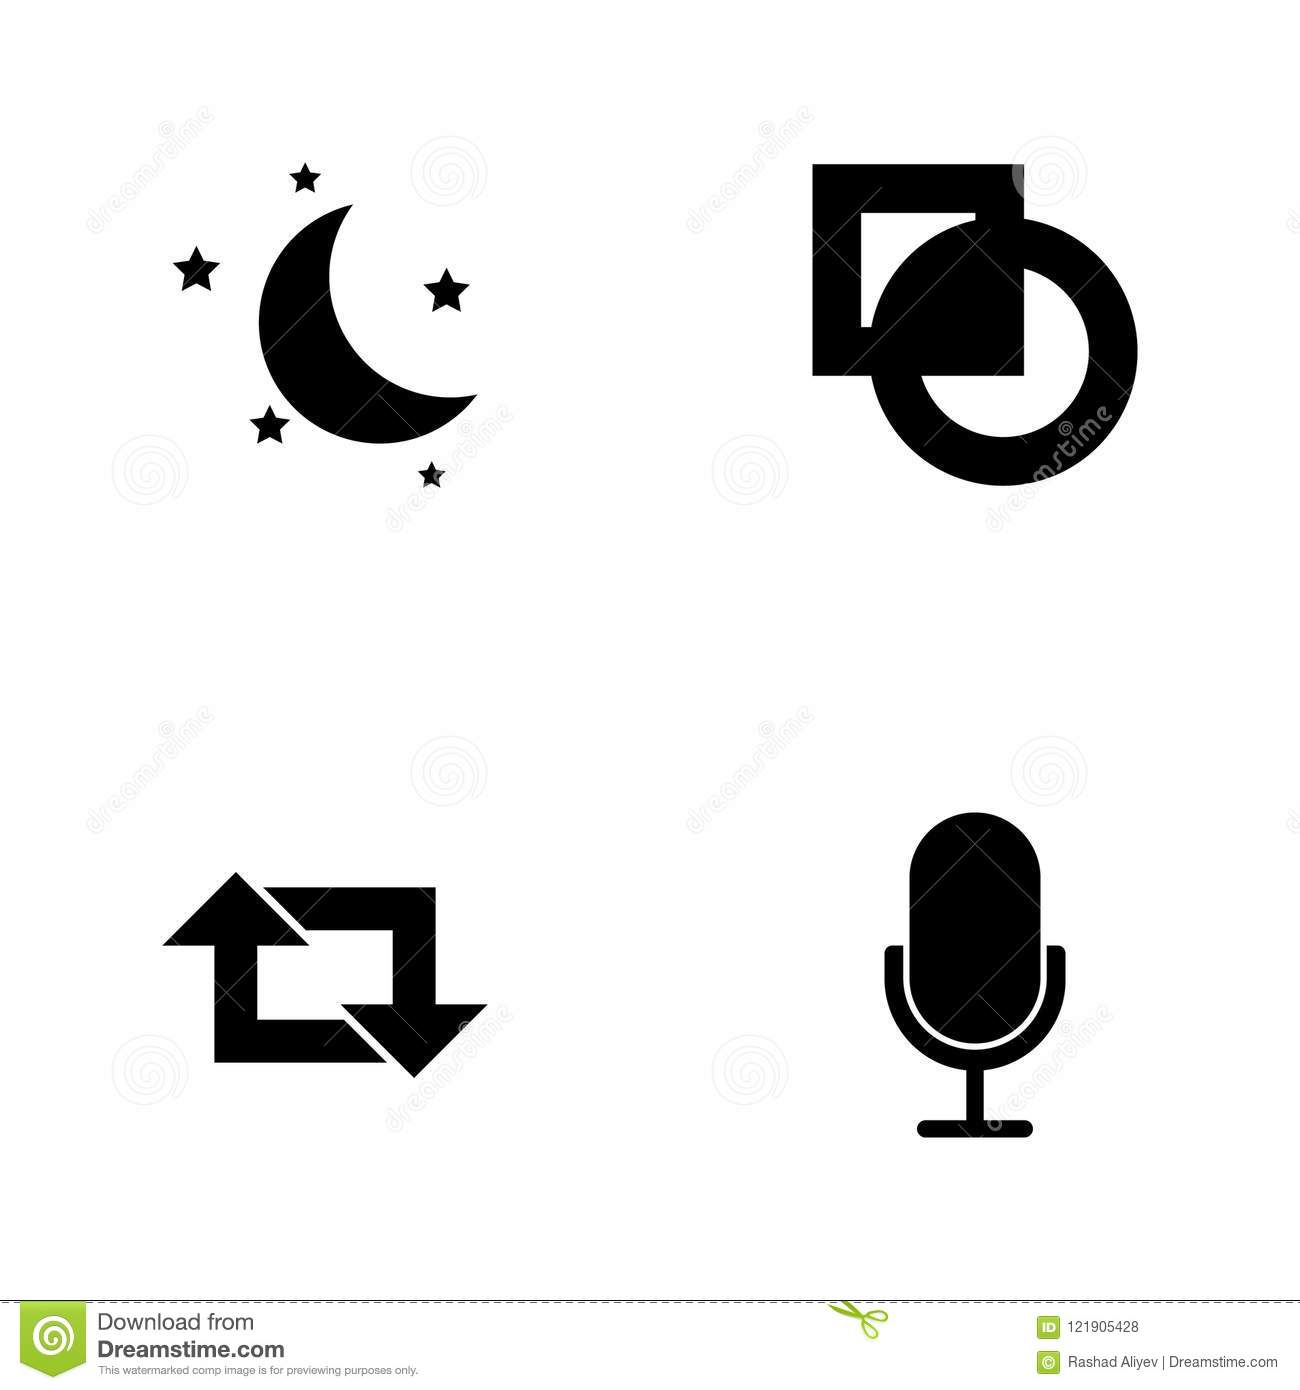 Vector illustration set web icons. Elements microphone, repeat sign, cut sign and half moon and stars icon